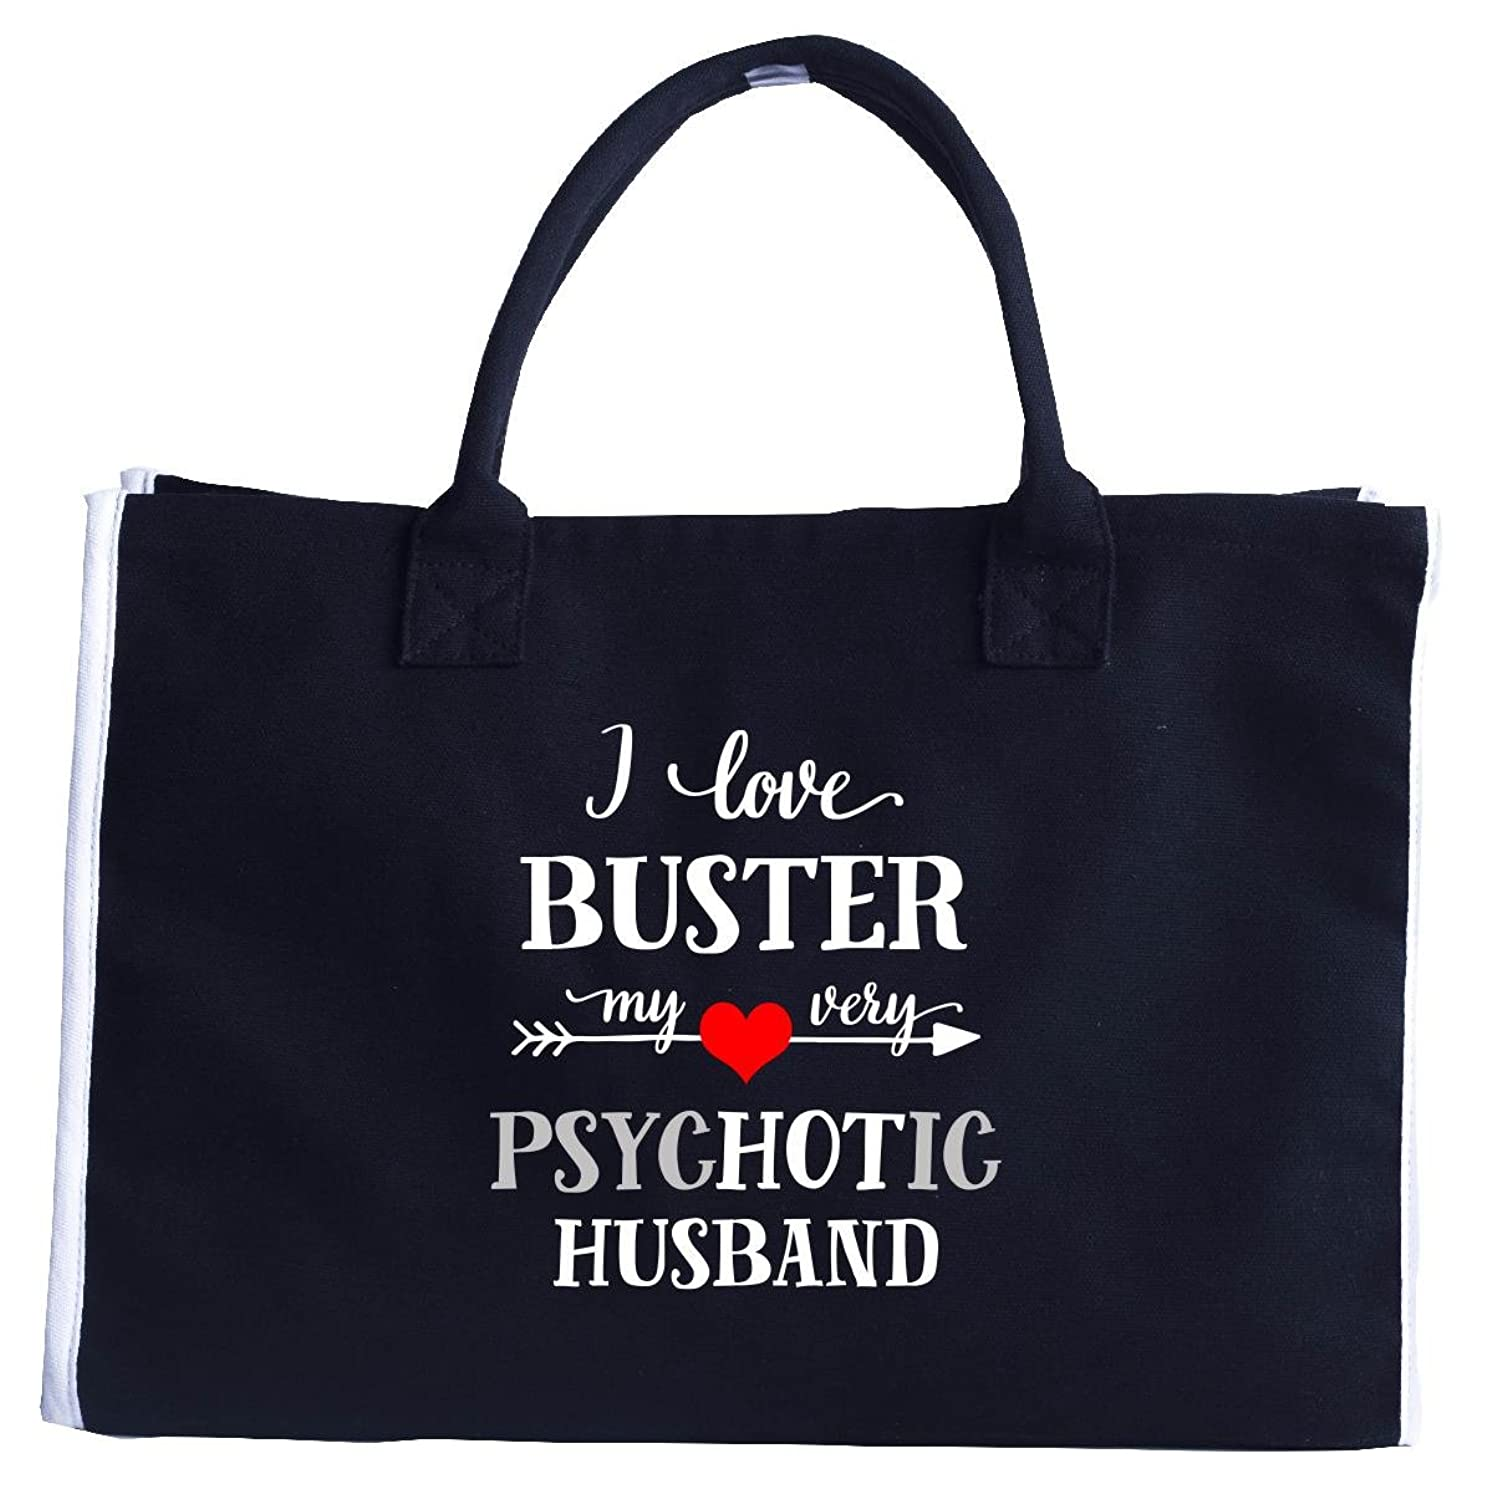 I Love Buster My Very Psychotic Husband. Gift For Her - Fashion Tote Bag